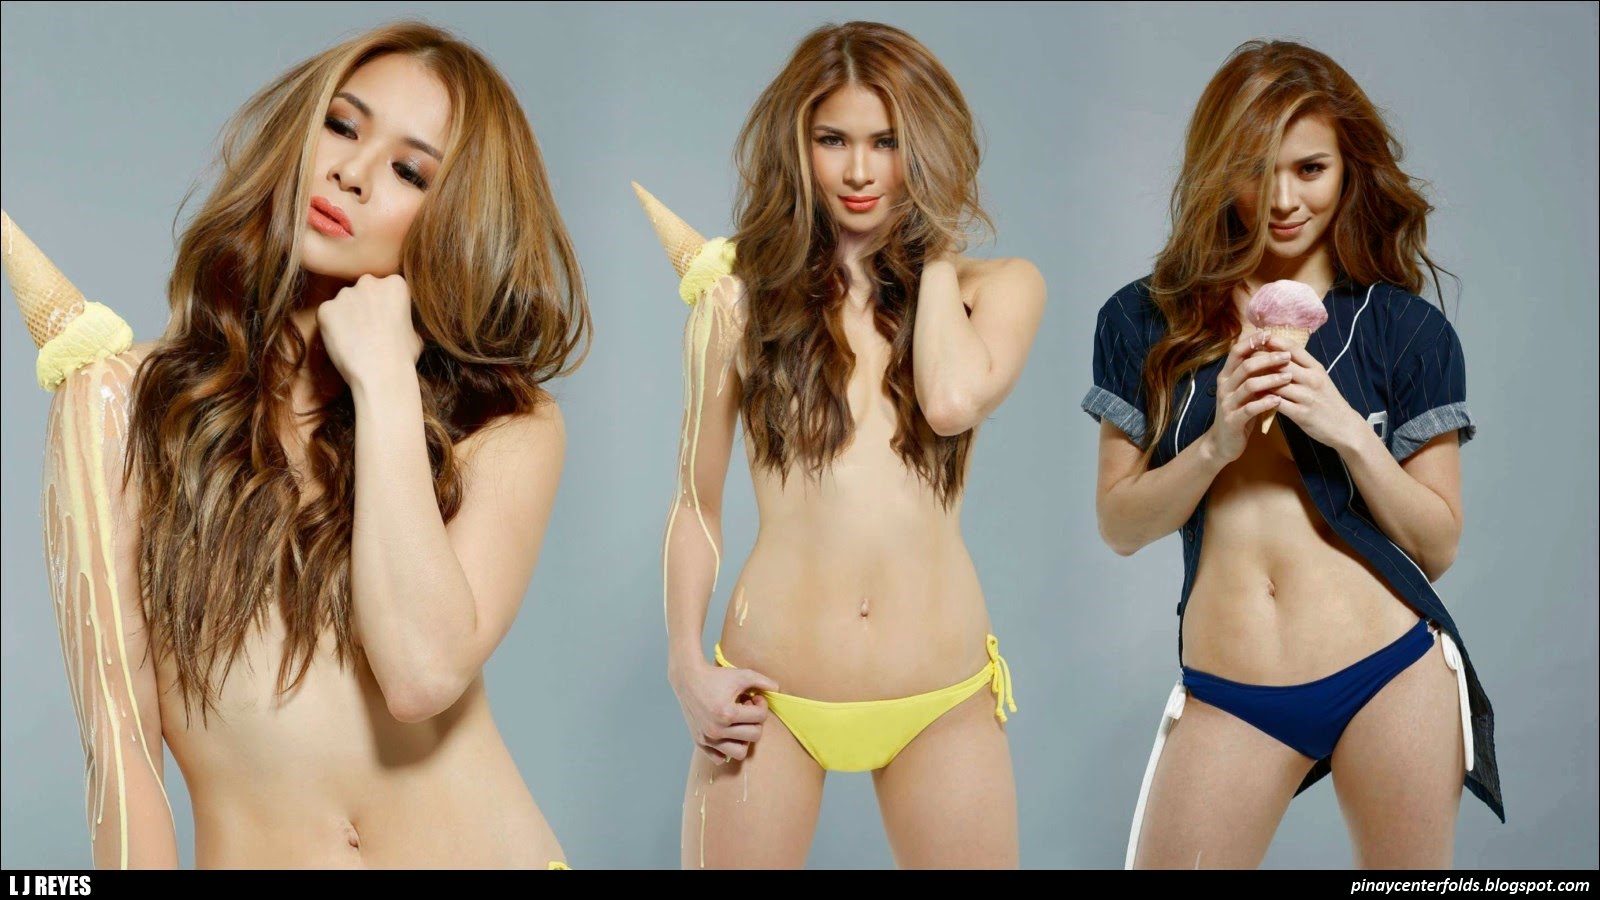 LJ Reyes In FHM Ladies Confessions 1